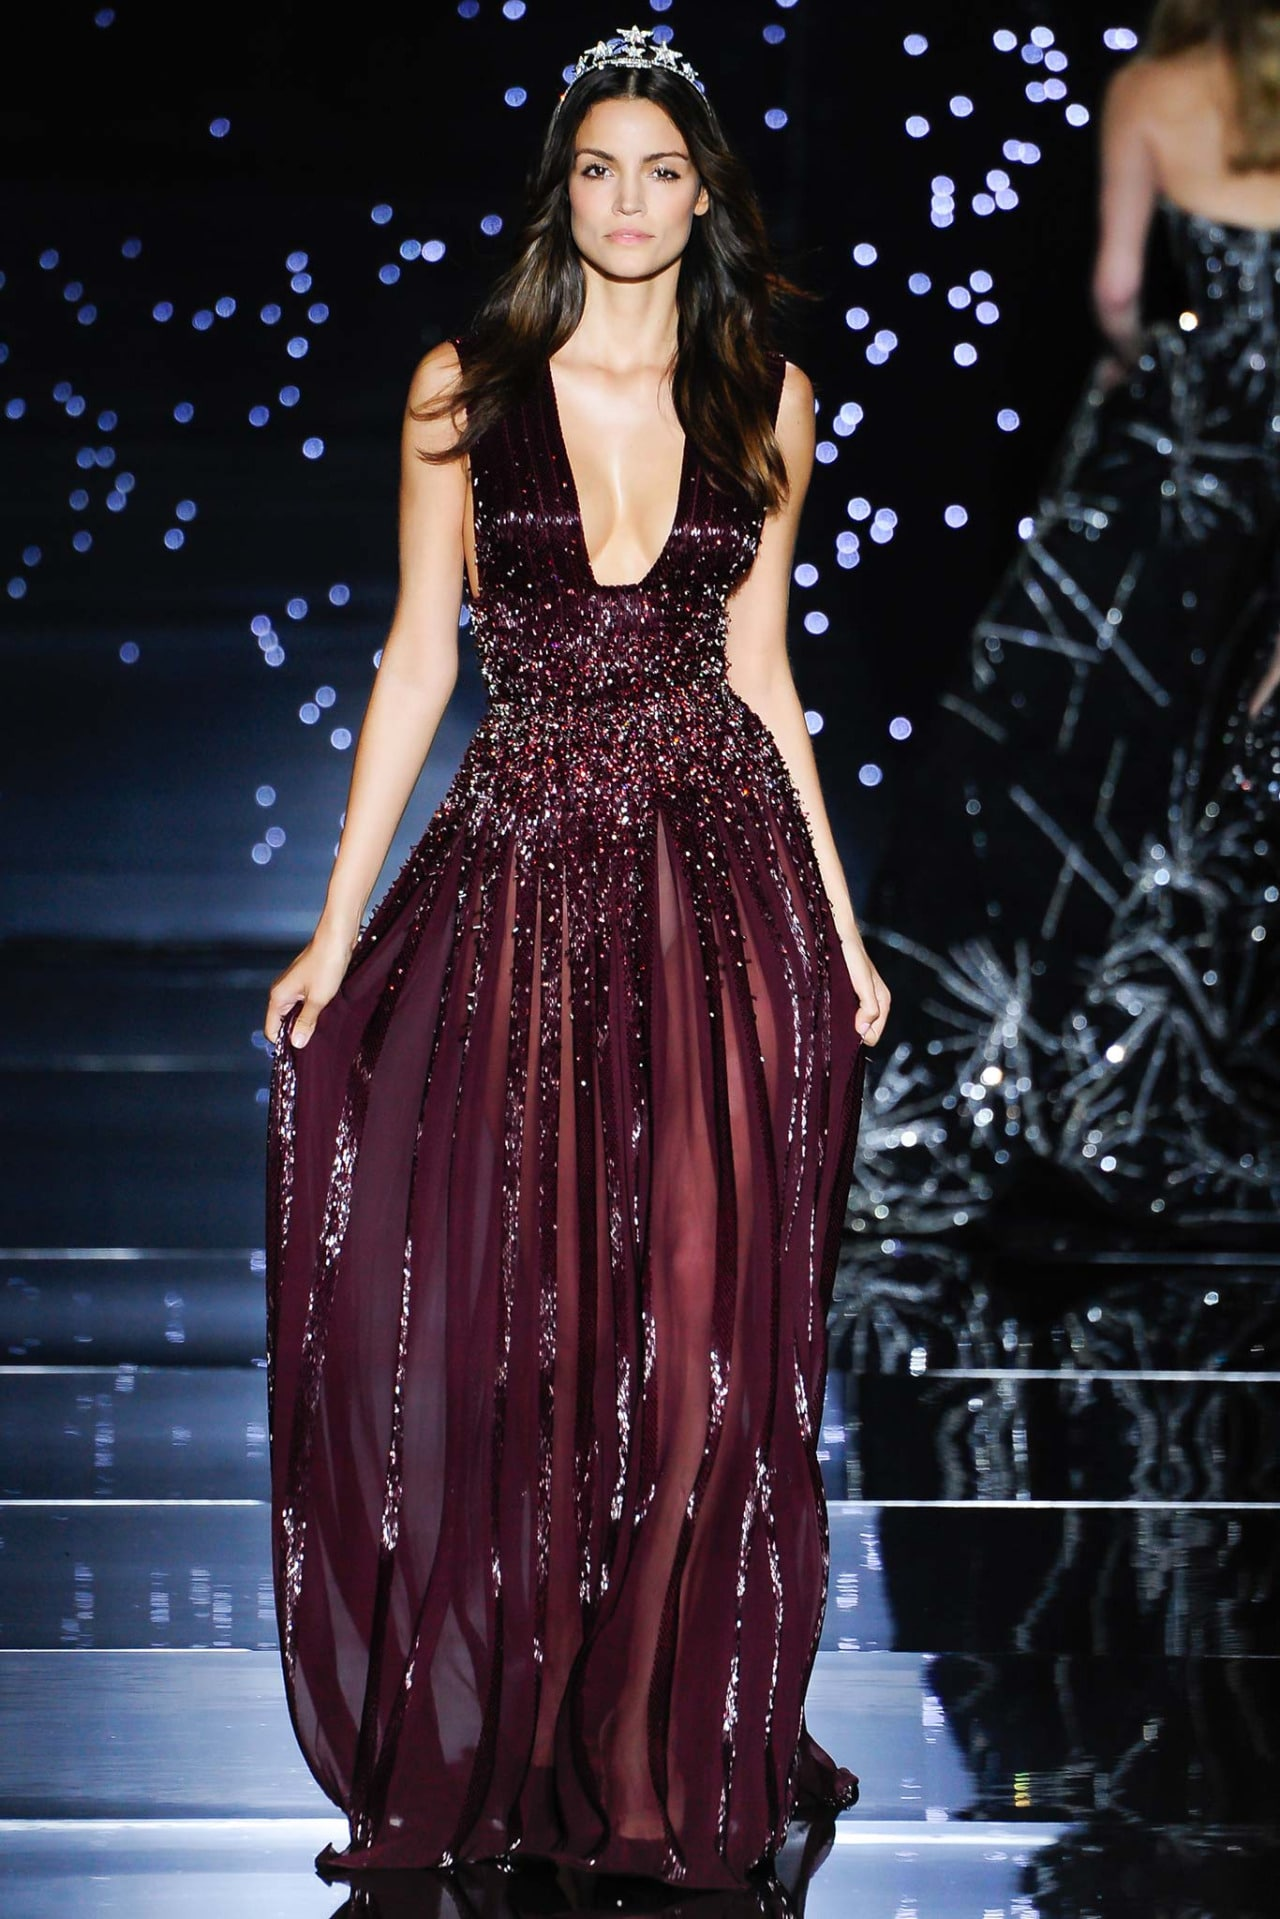 zuhair-murad-fall-2015-collection-6